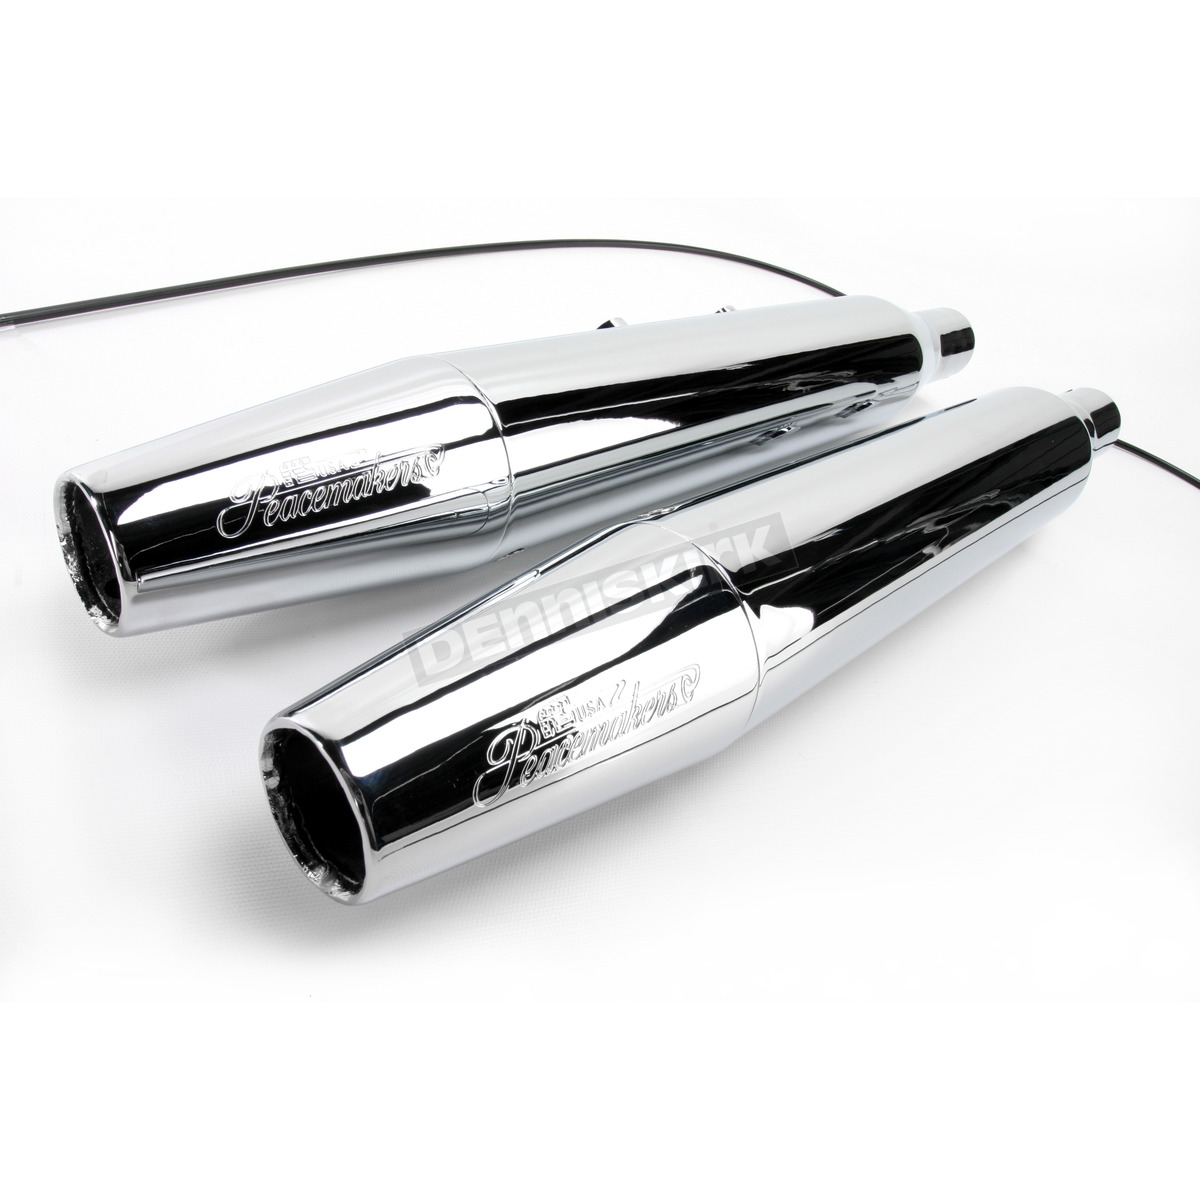 Chrome Peacemaker Exhaust System - N41413